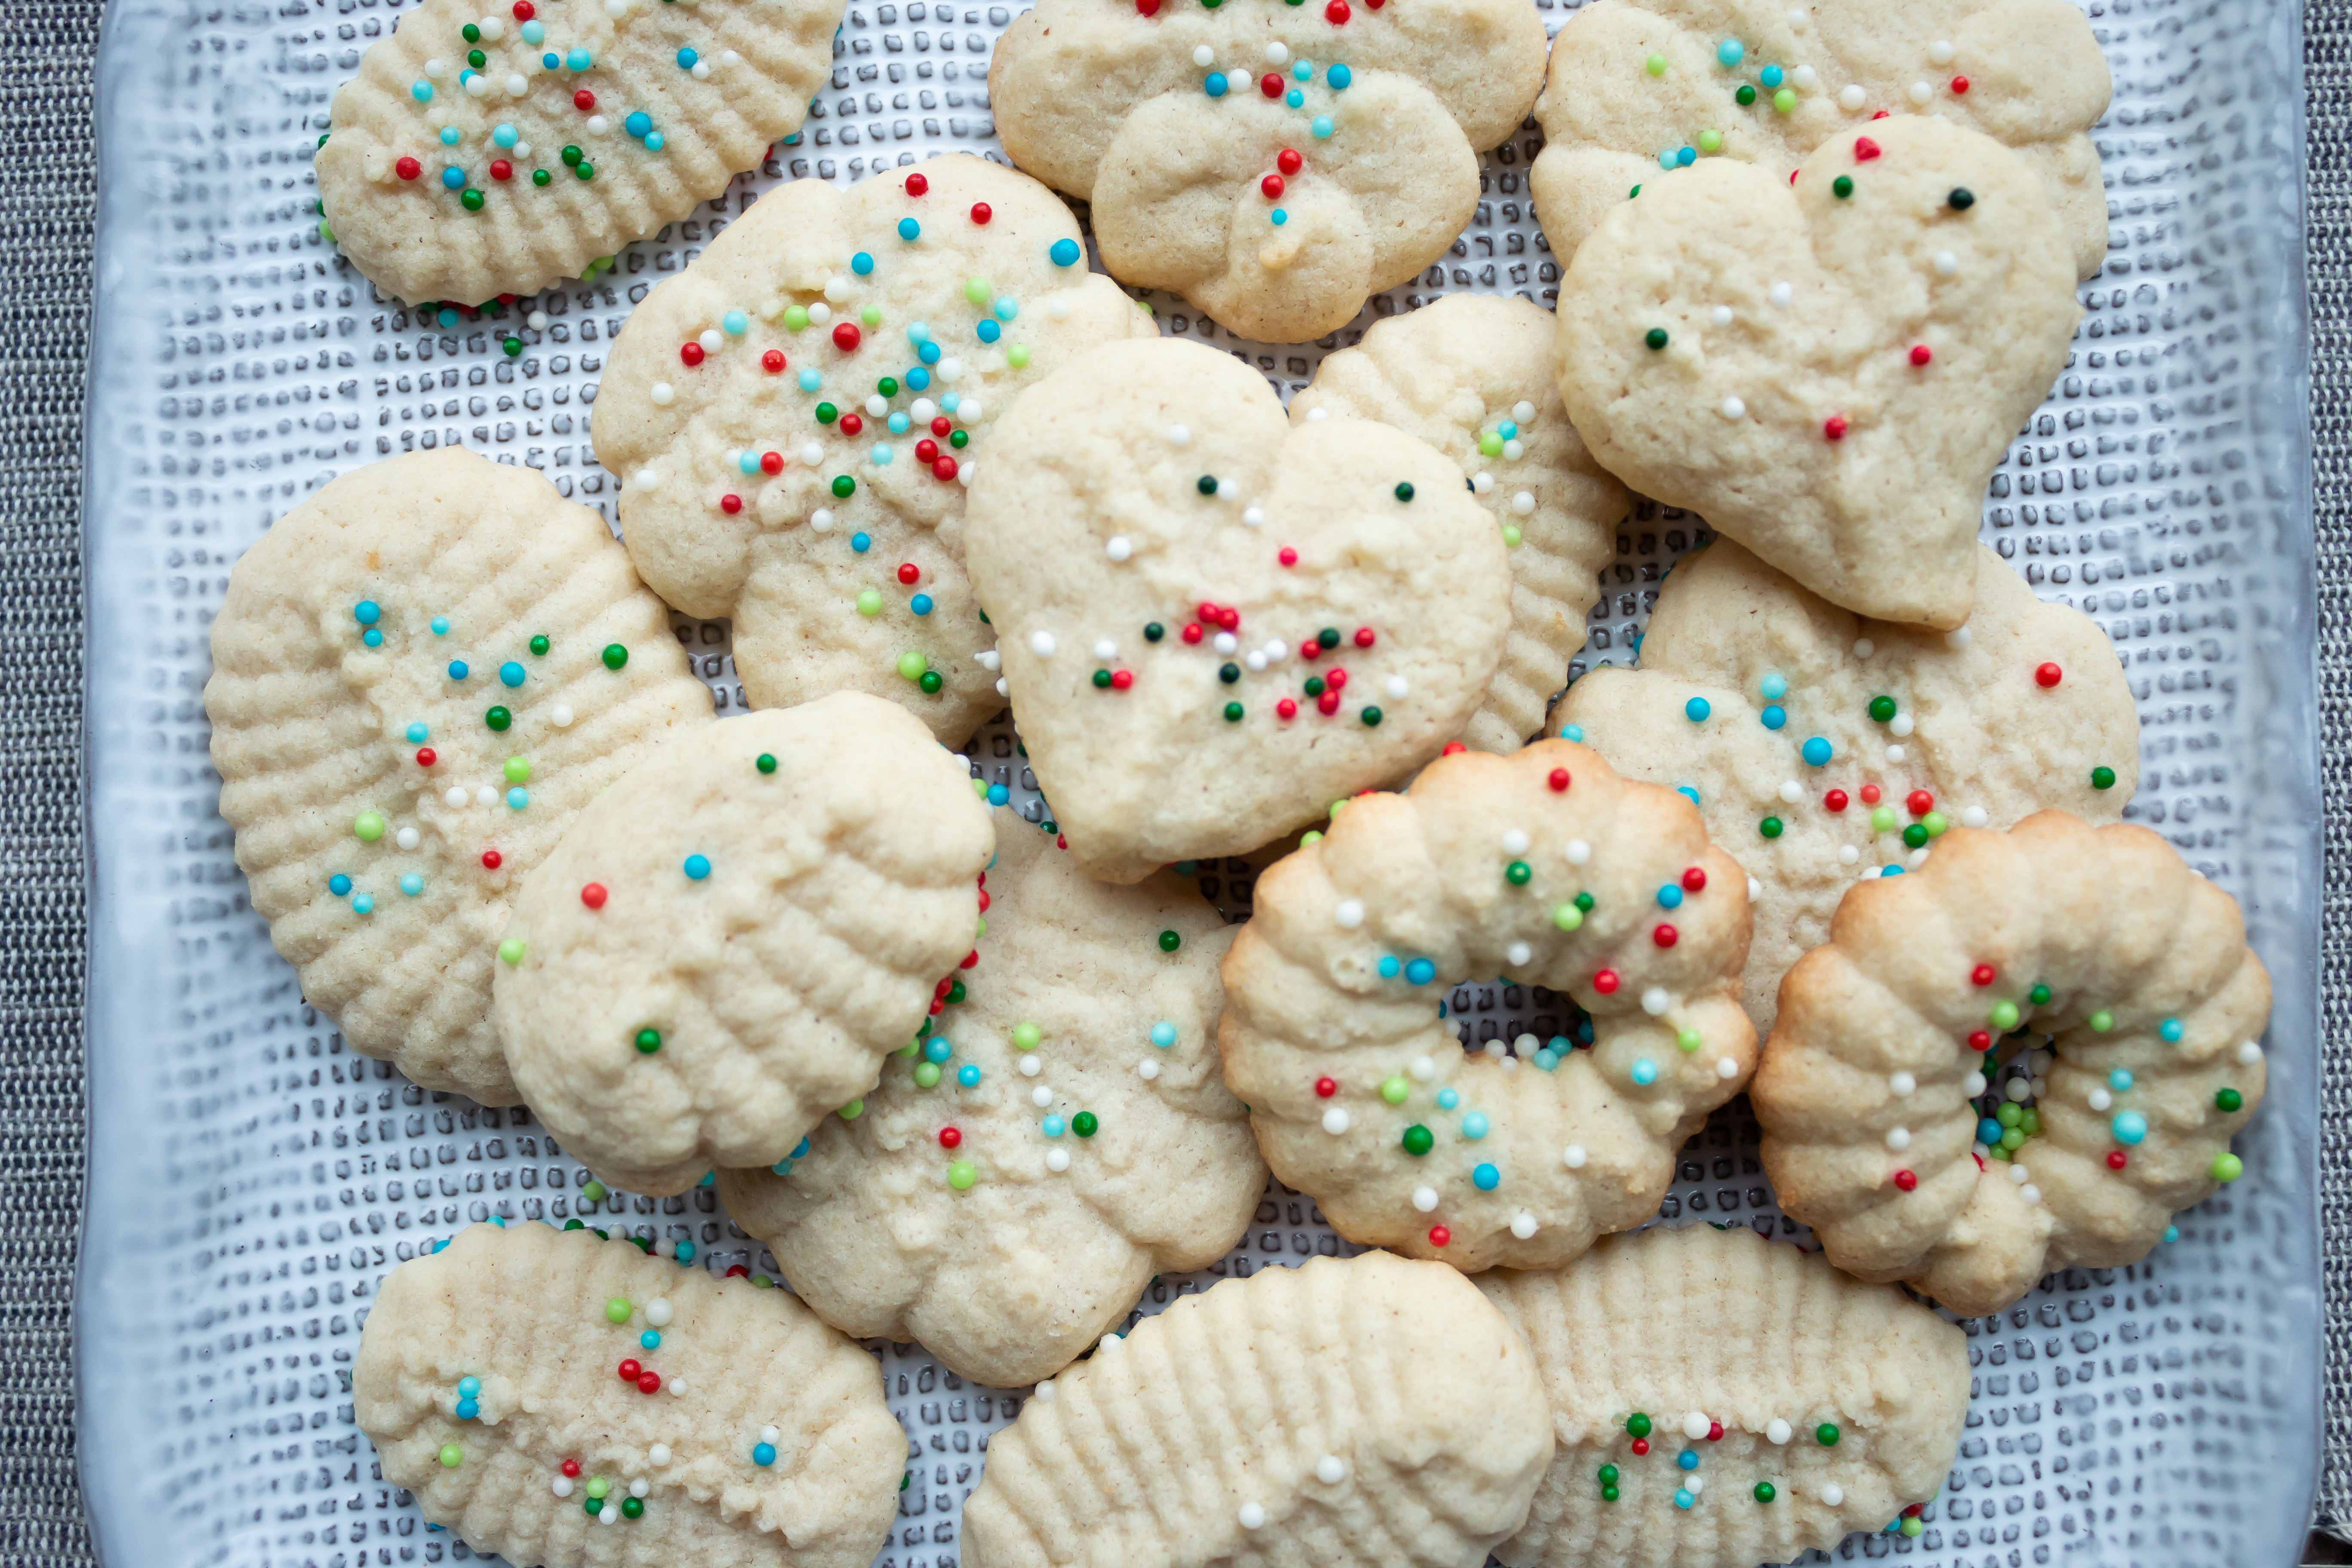 Gluten free + Low FODMAP Spritz Cookies